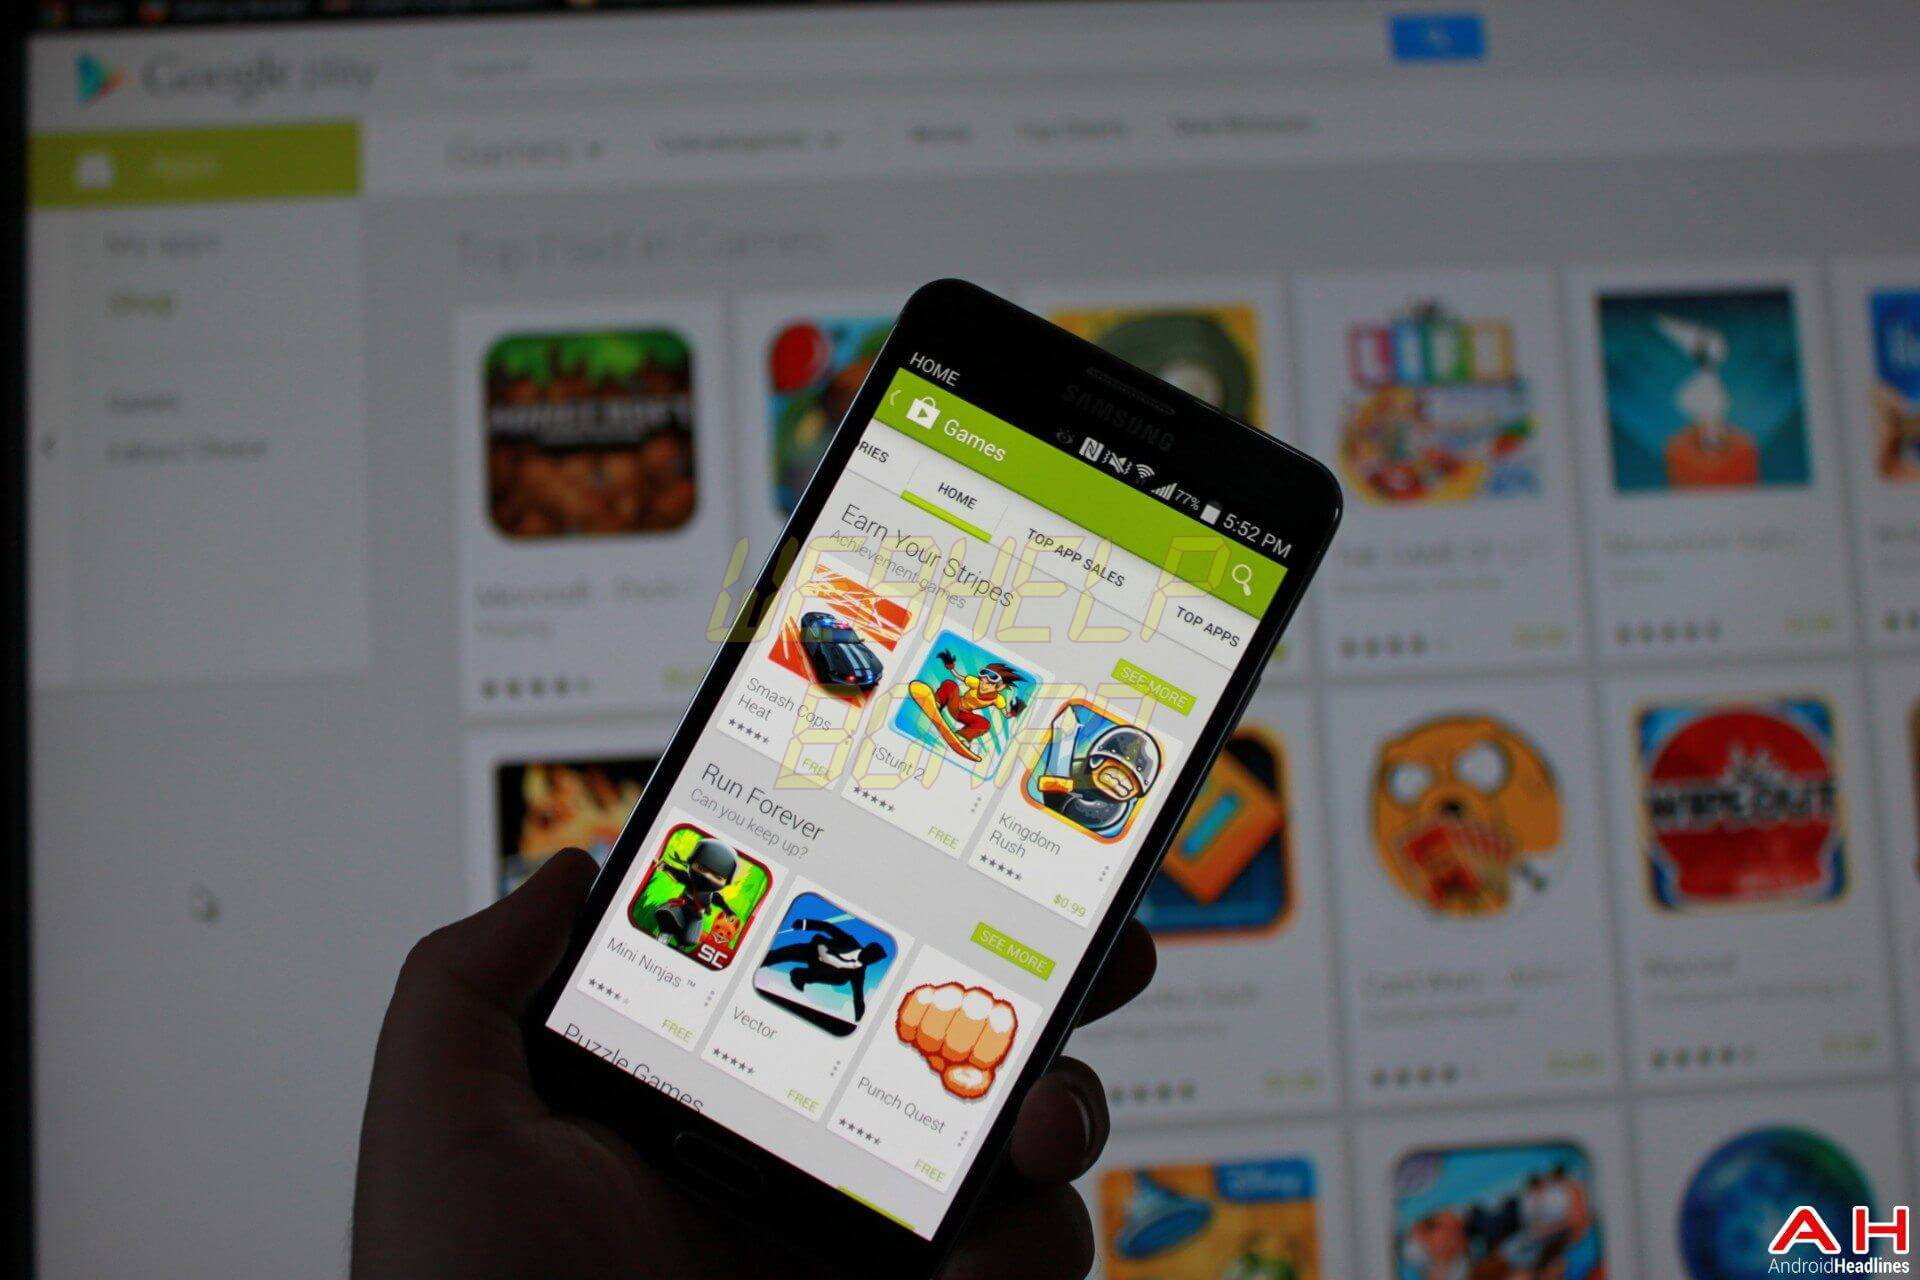 AH Google Play App Store Game of the week top 10 games android 1.3 - Os melhores apps para VPN de graça no Android